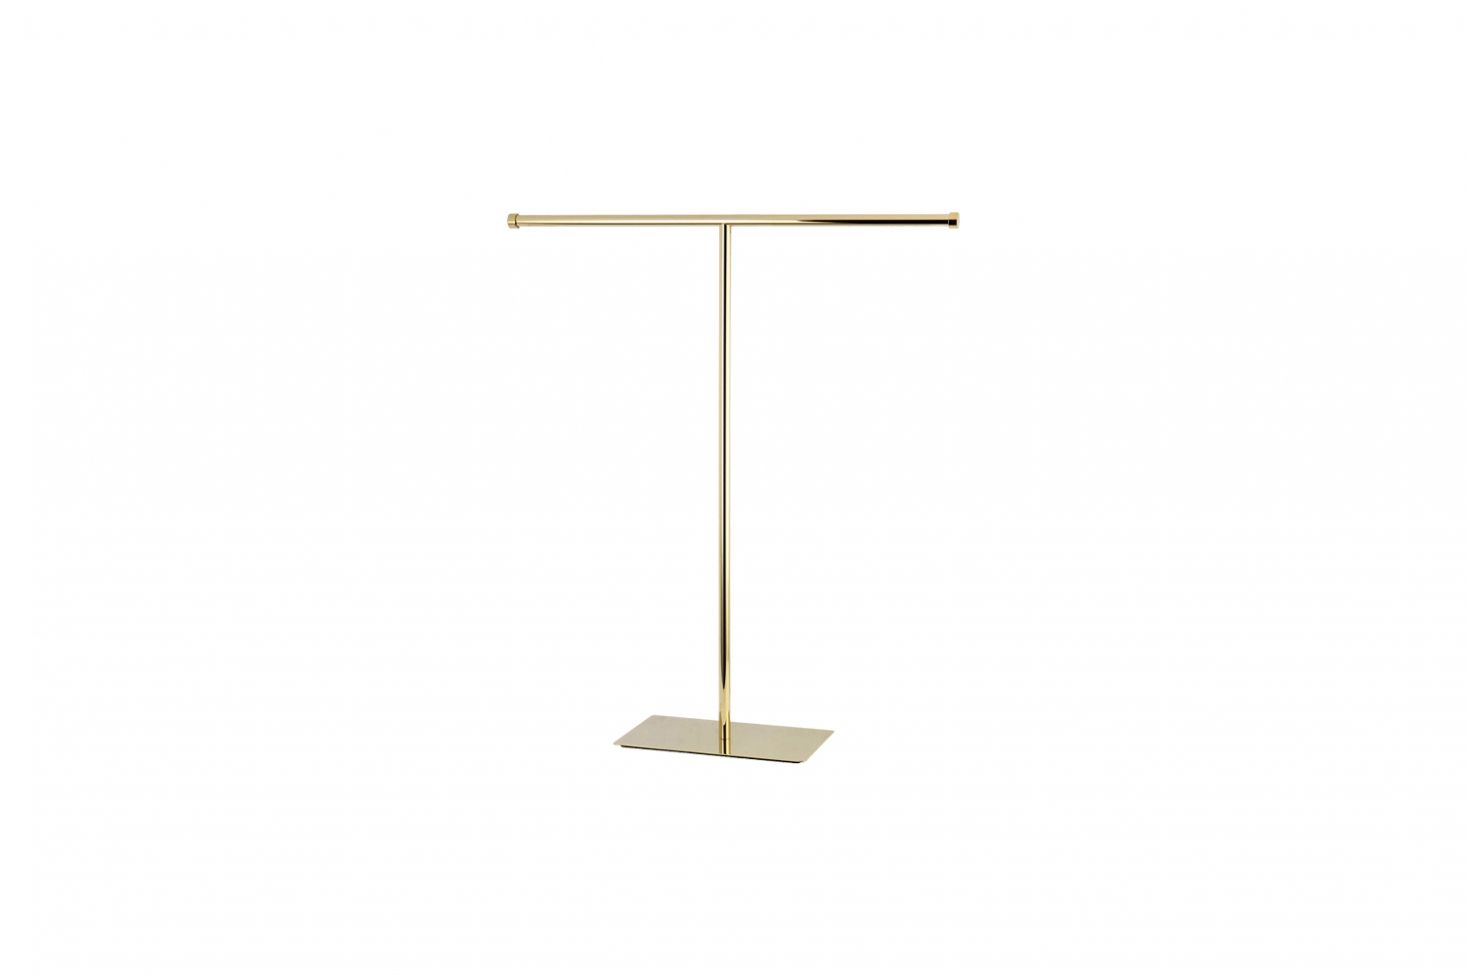 Bed Bath And Beyond Towel Rack Beauteous The Kingston Brass Claremont Freestanding Towel Rack In Brass Is 2018